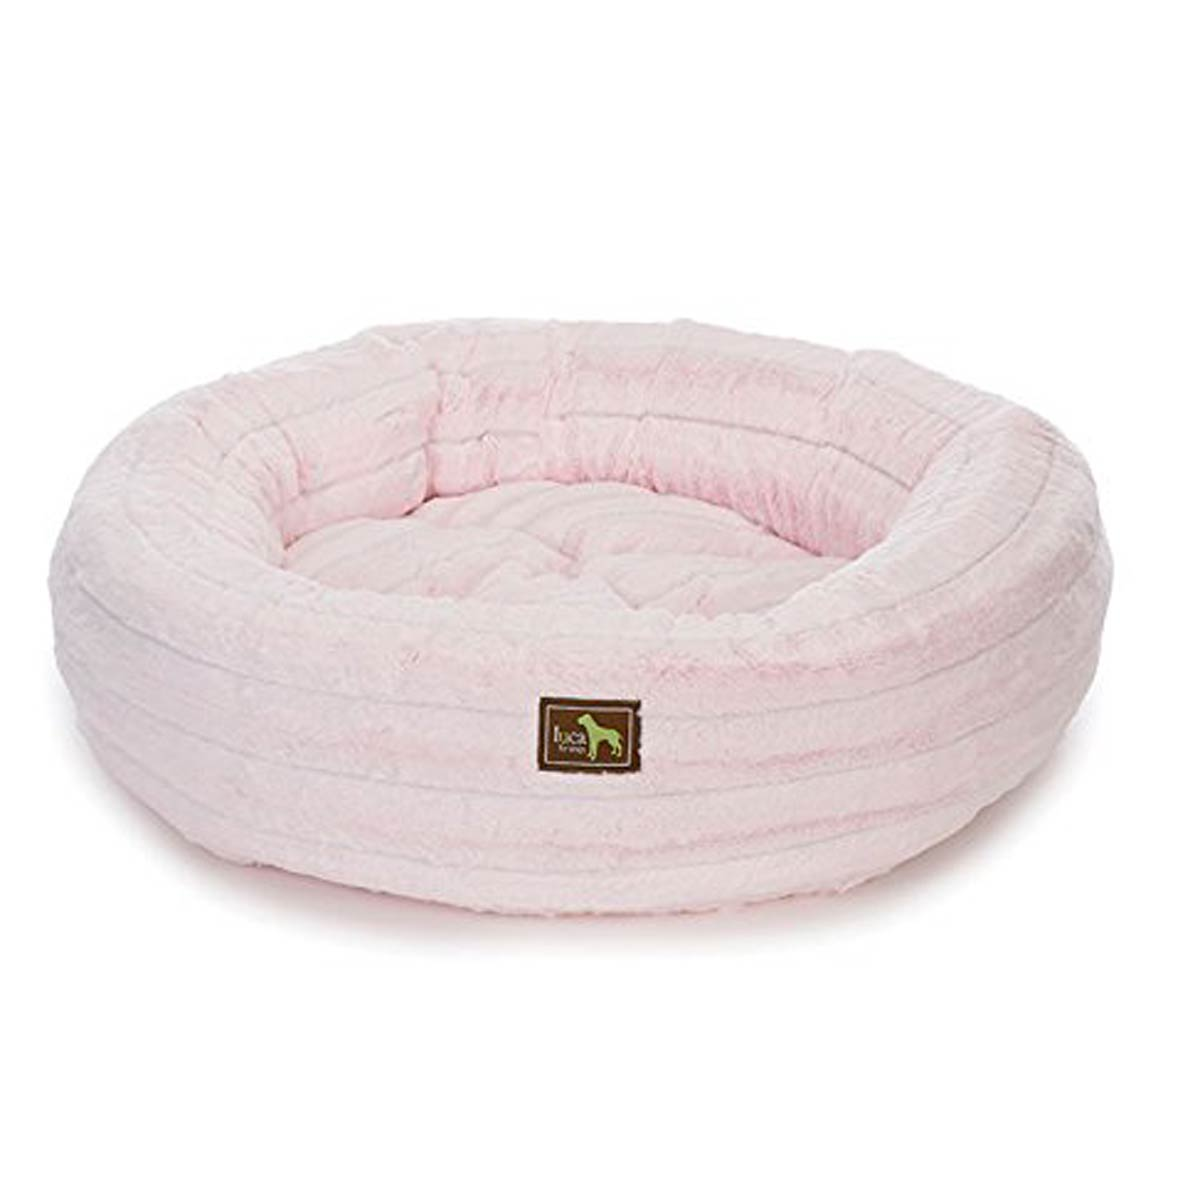 Luca Chinchilla Nest Plush Dog Bed - Baby Pink